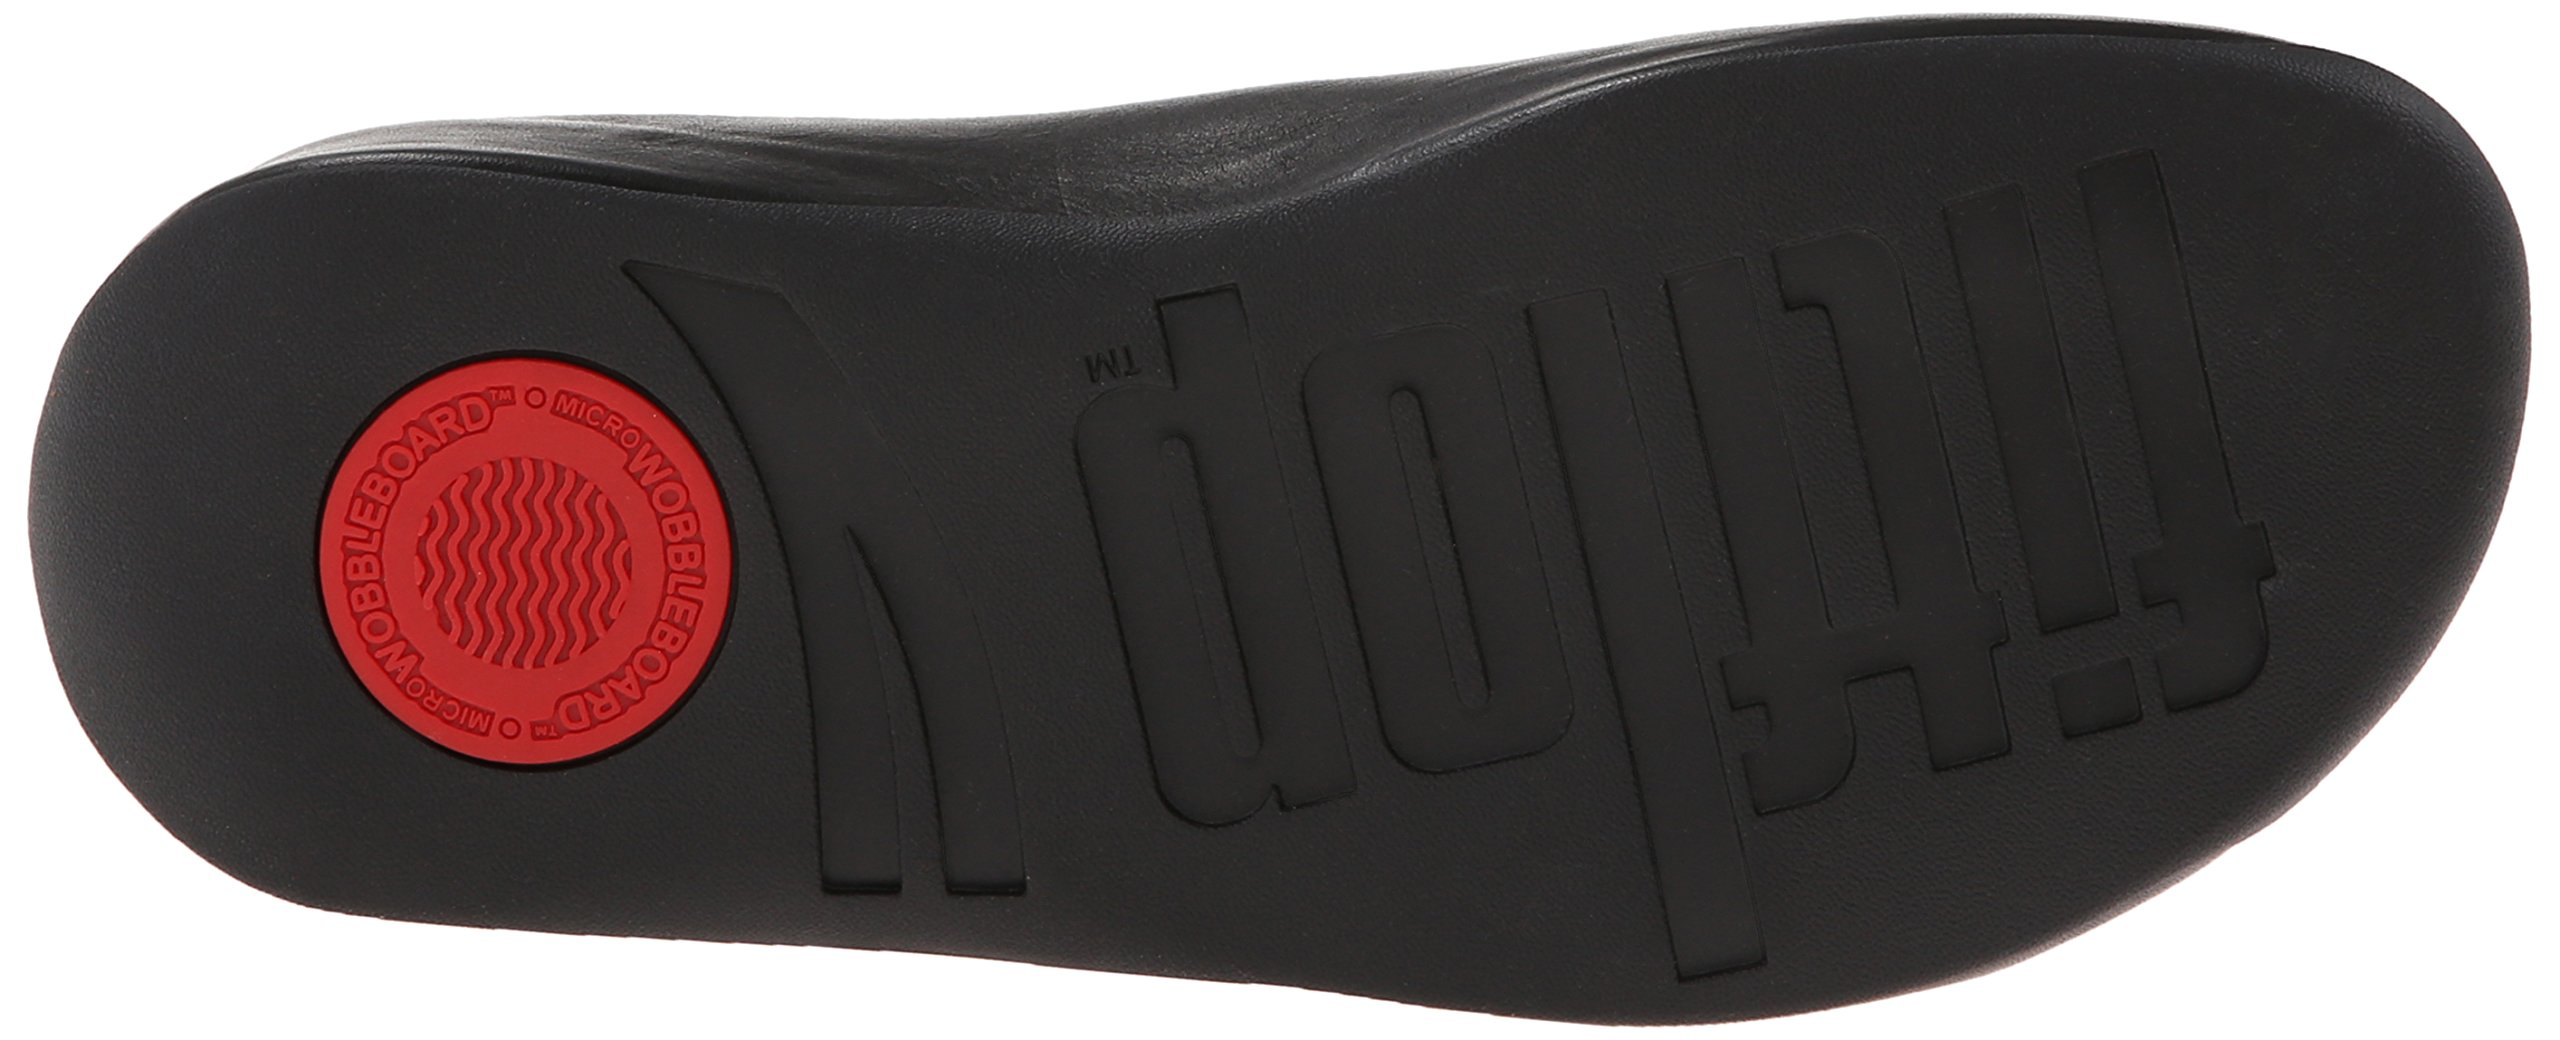 FitFlop Women's Shuv Leather Clog,Black,5 M US by FitFlop (Image #3)